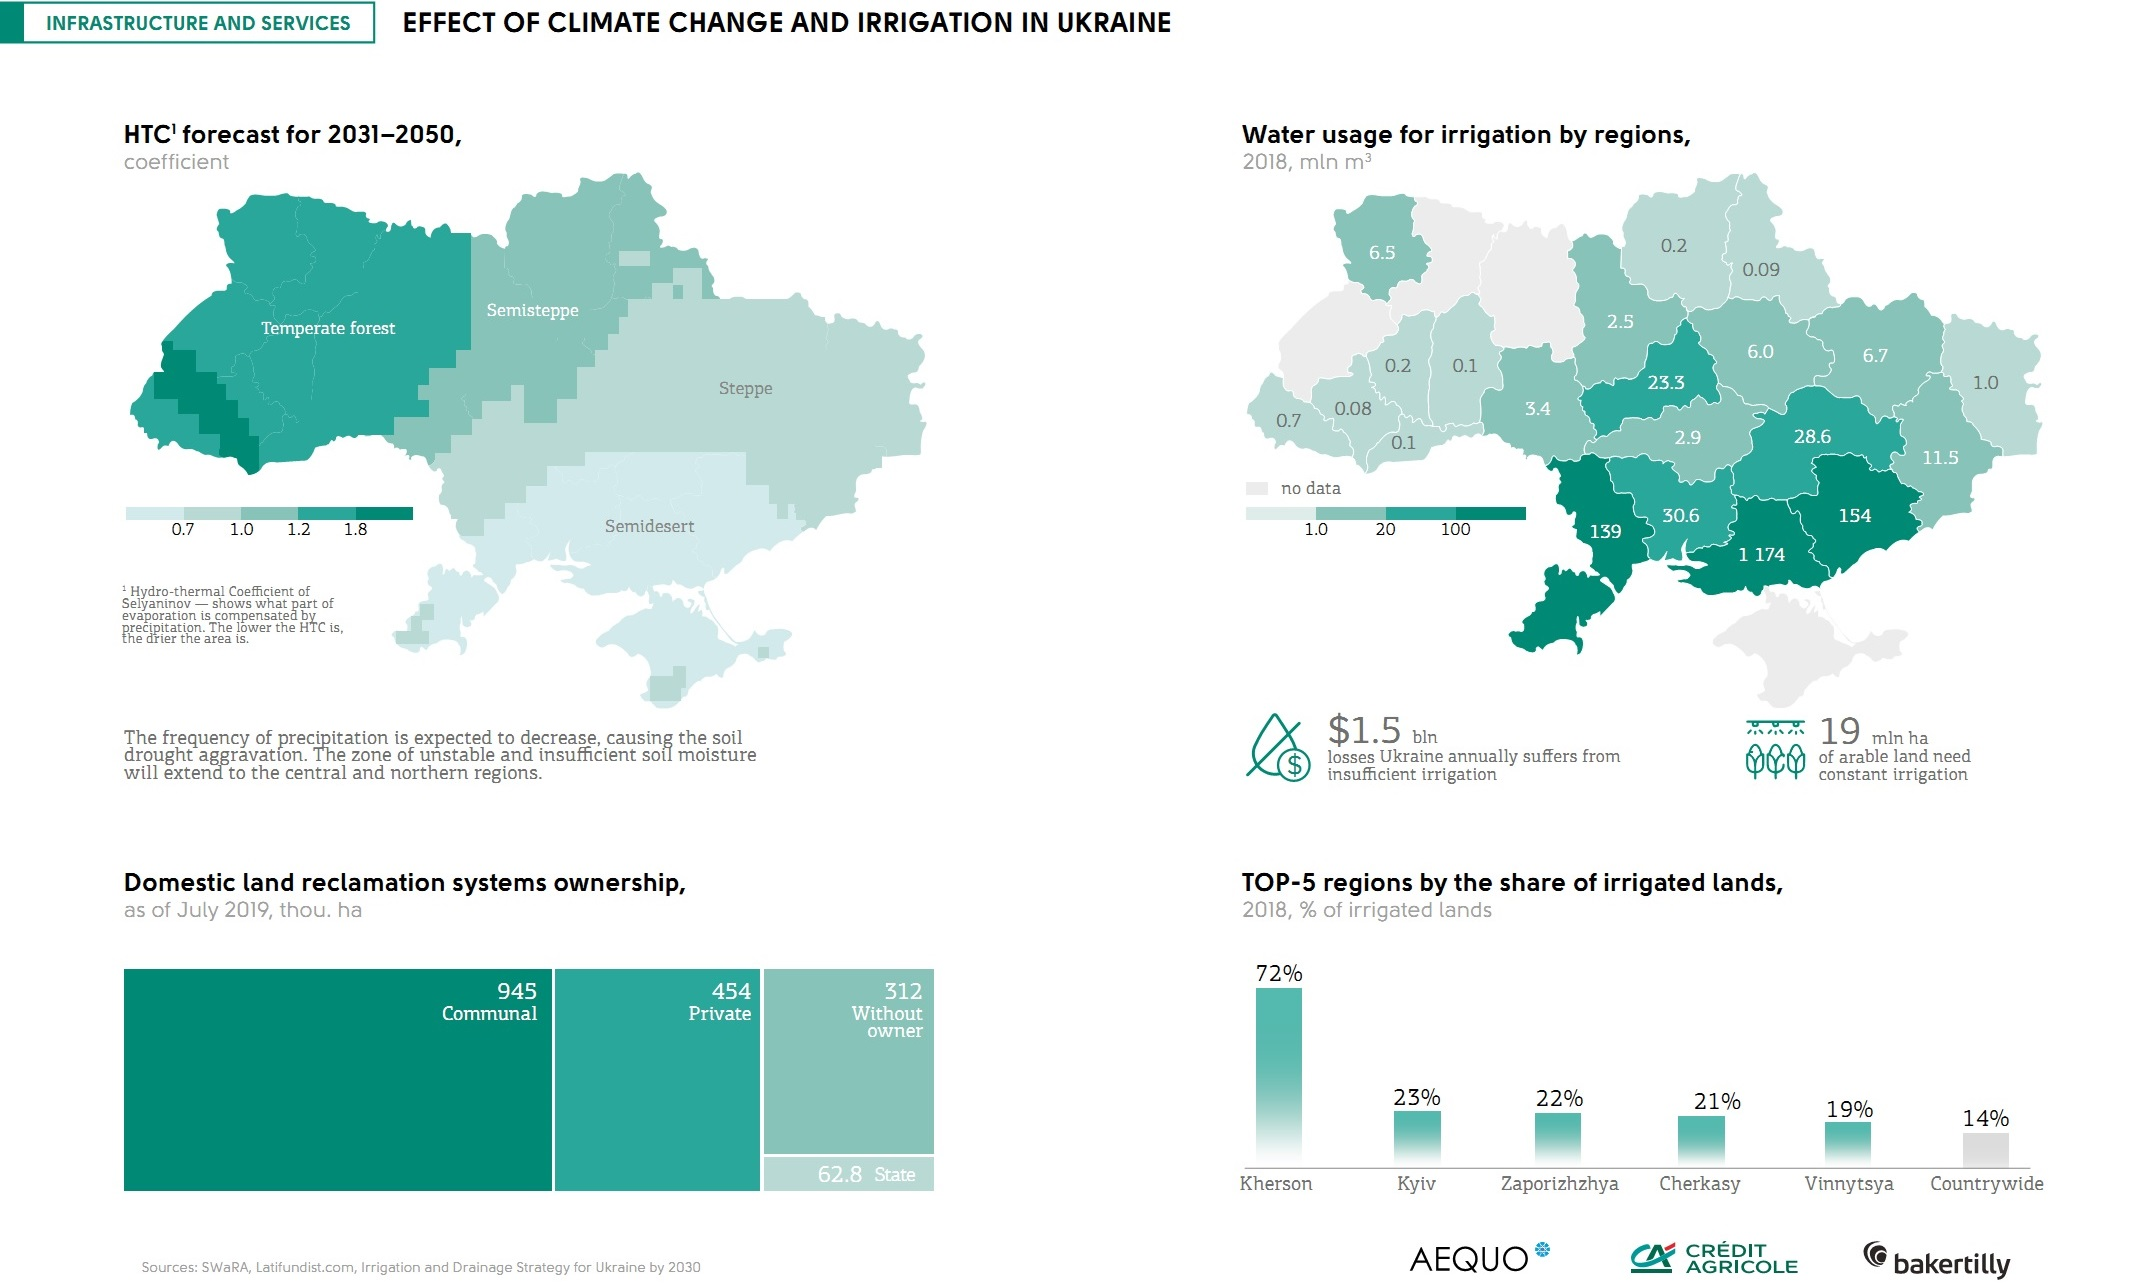 Effect of climate change and irrigation in Ukraine (click for full resolution)